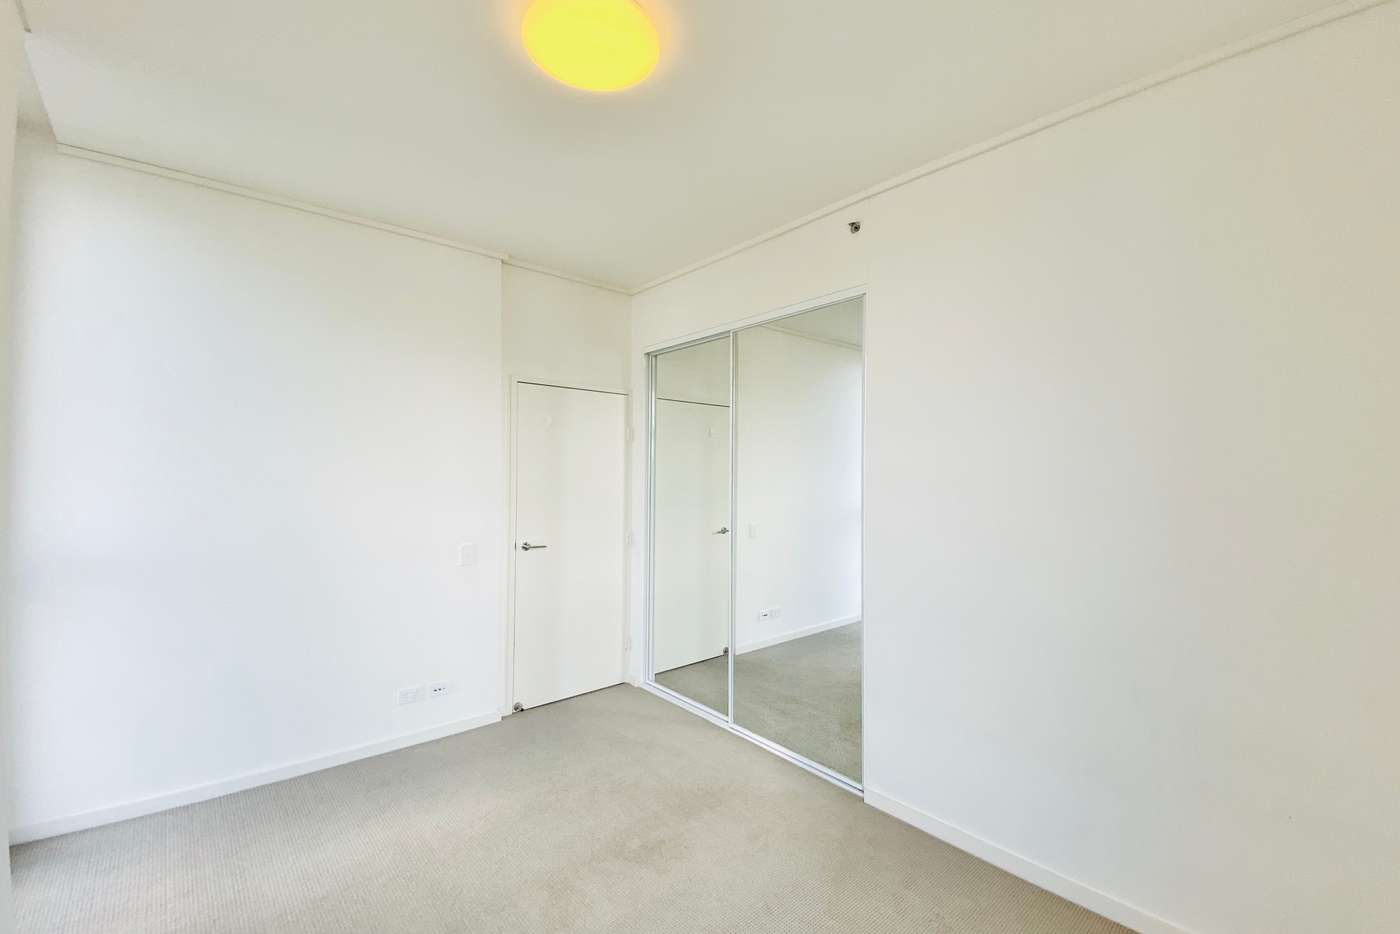 Sixth view of Homely apartment listing, 502/7 Washington Avenue, Riverwood NSW 2210